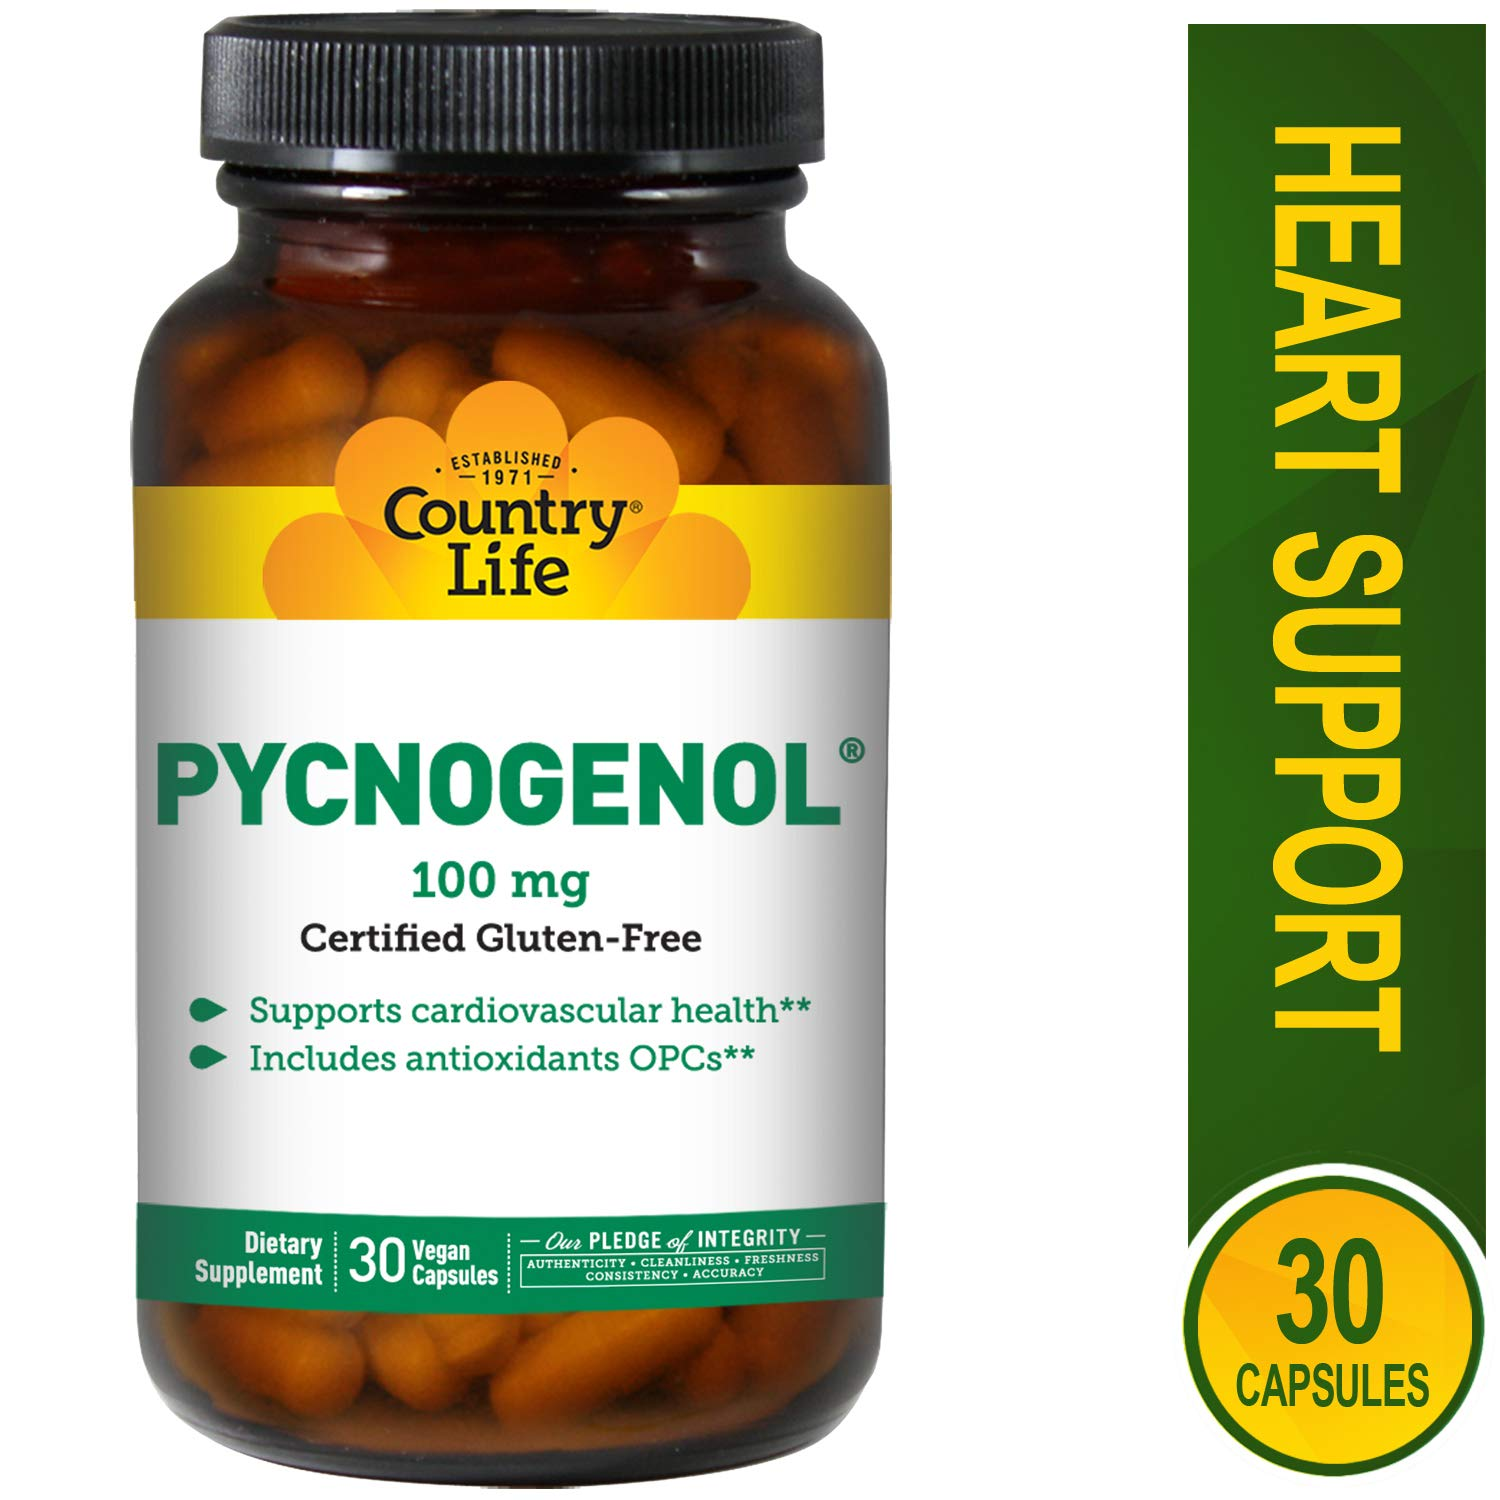 Country Life Pycnogenol - 100 mg - 30 Vegetarian Capsules by Country Life